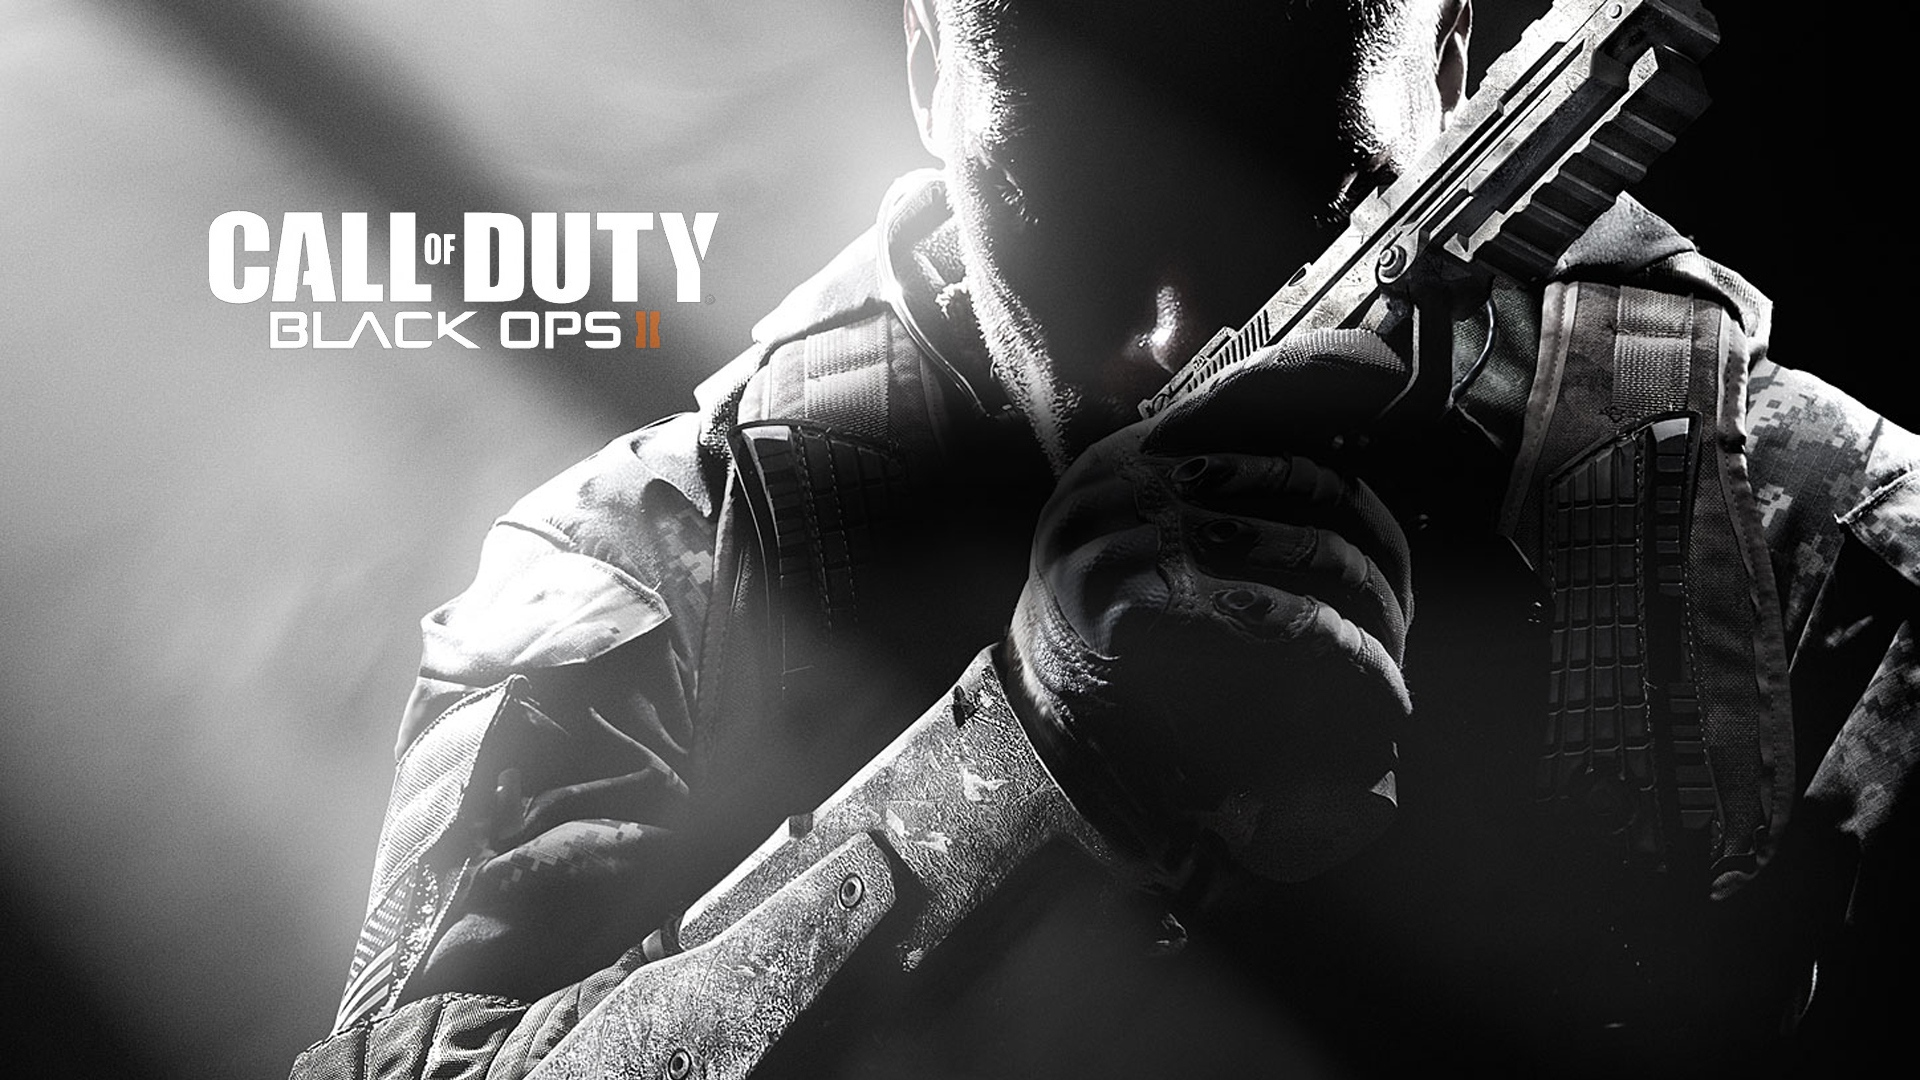 download call of duty black ops 2 hd 4k wallpapers in